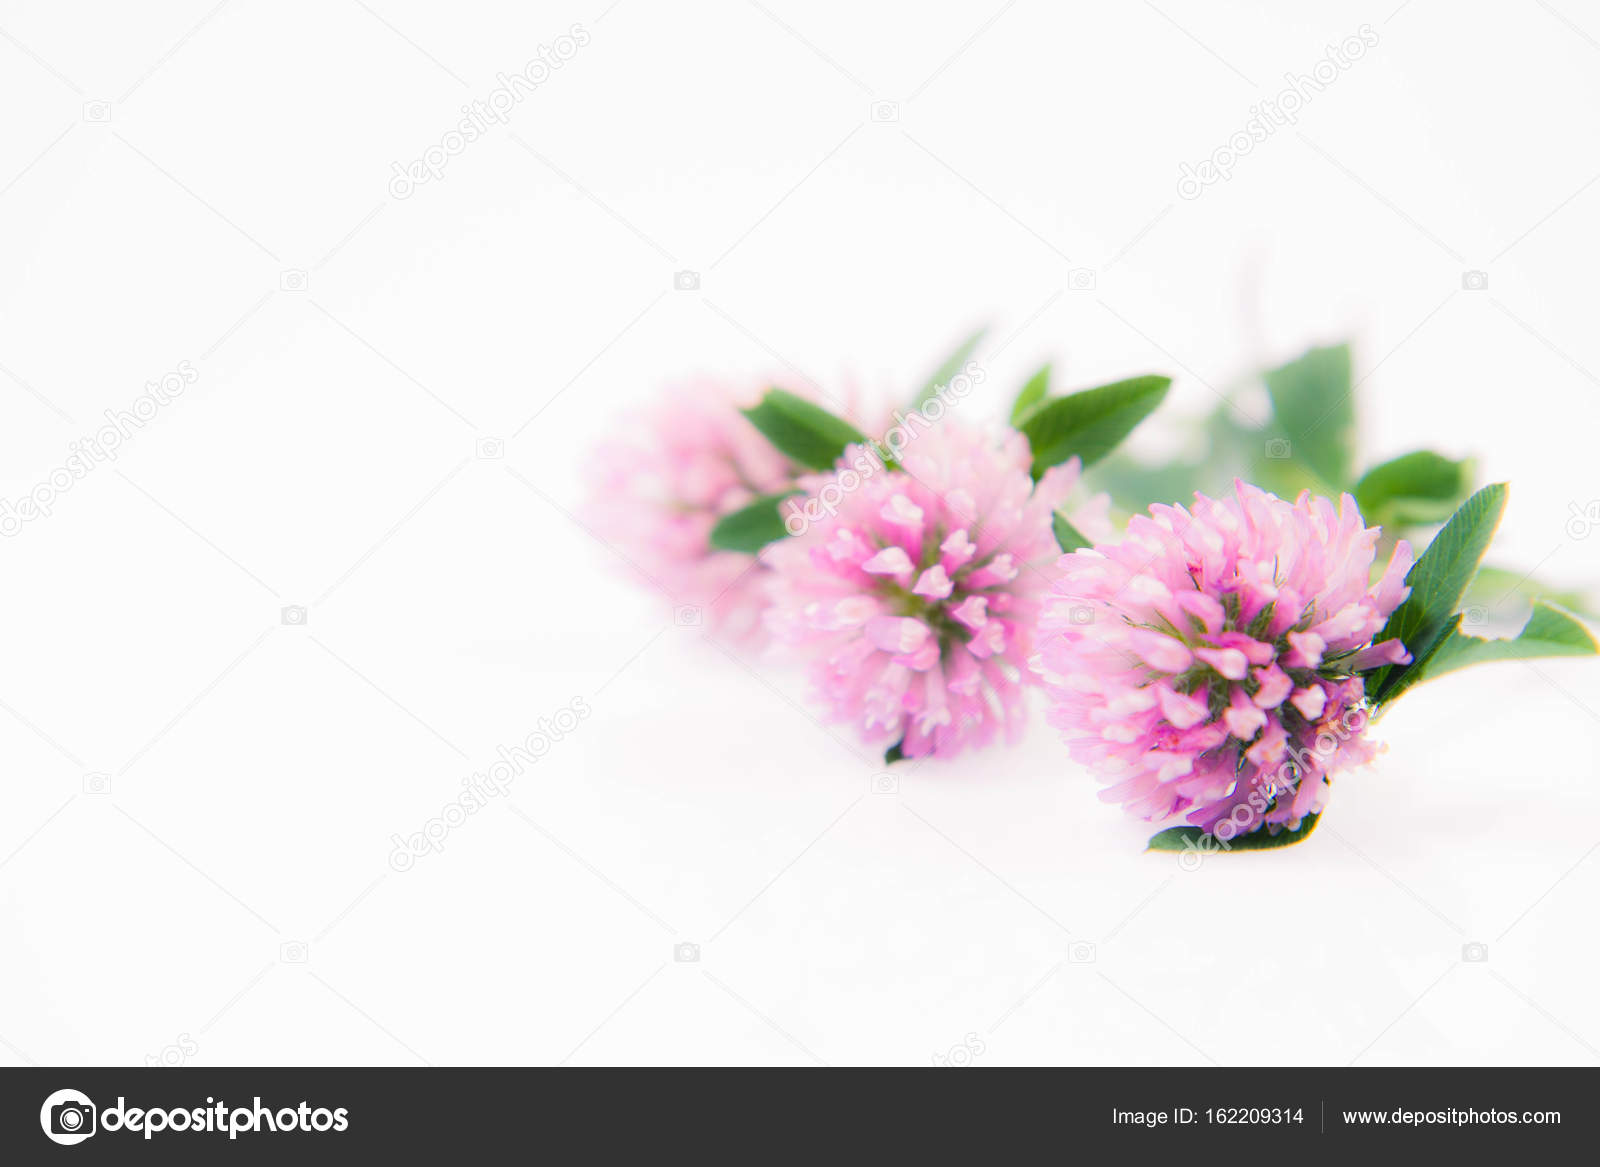 Pink Clover Flowers Stock Photo Teine26 162209314